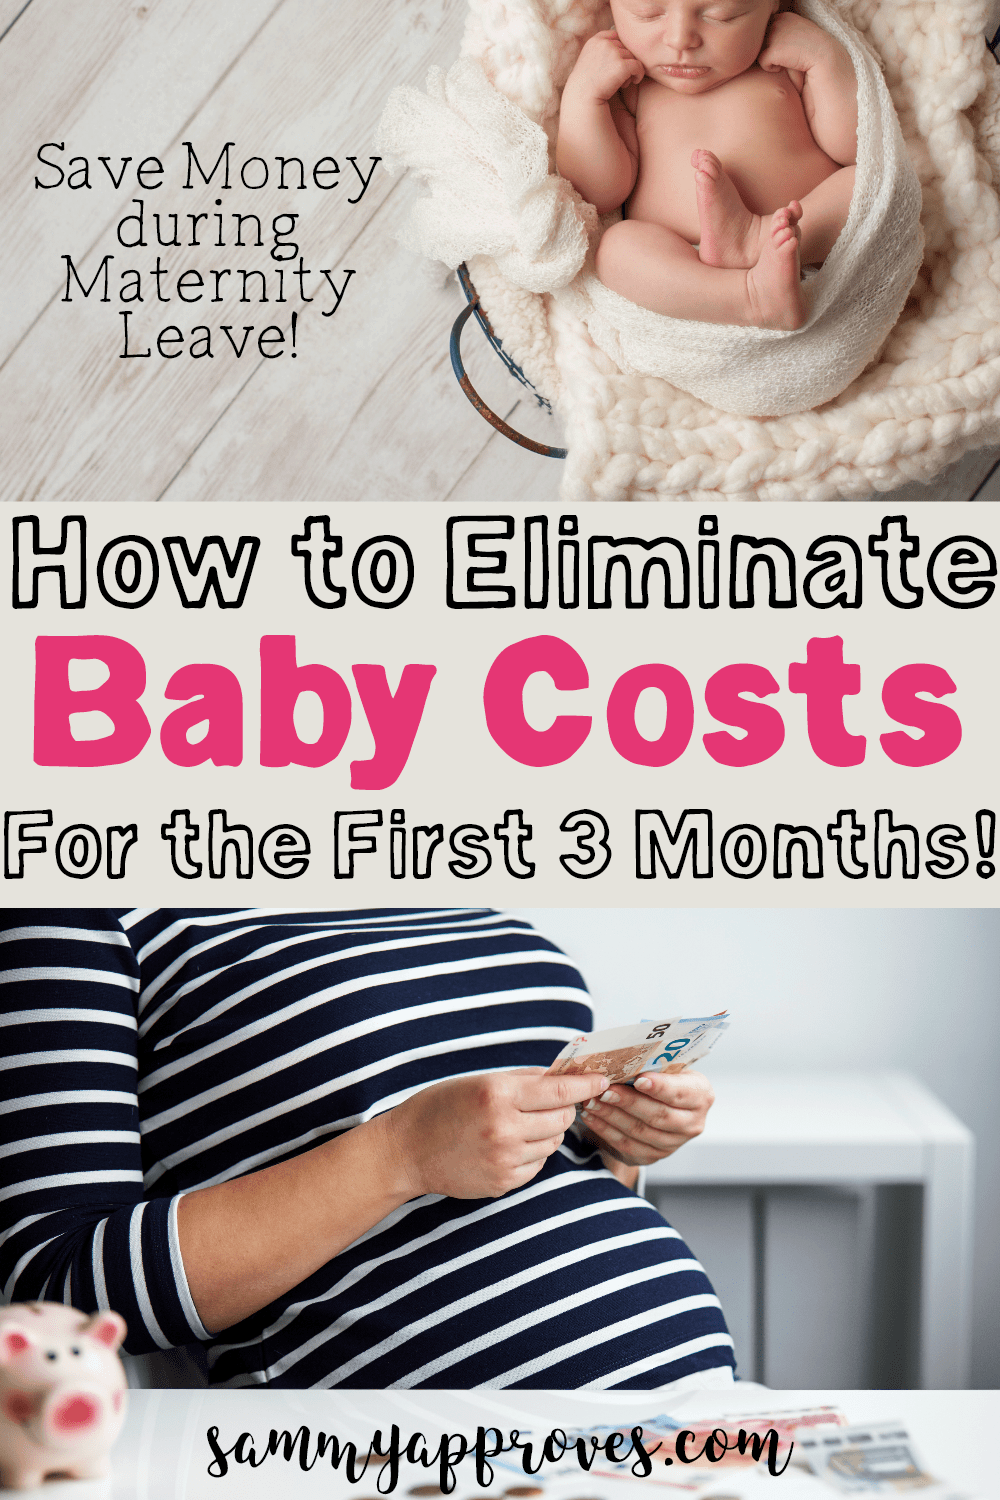 How to Eliminate Baby Costs for the First 3 Months | Save During Maternity Leave